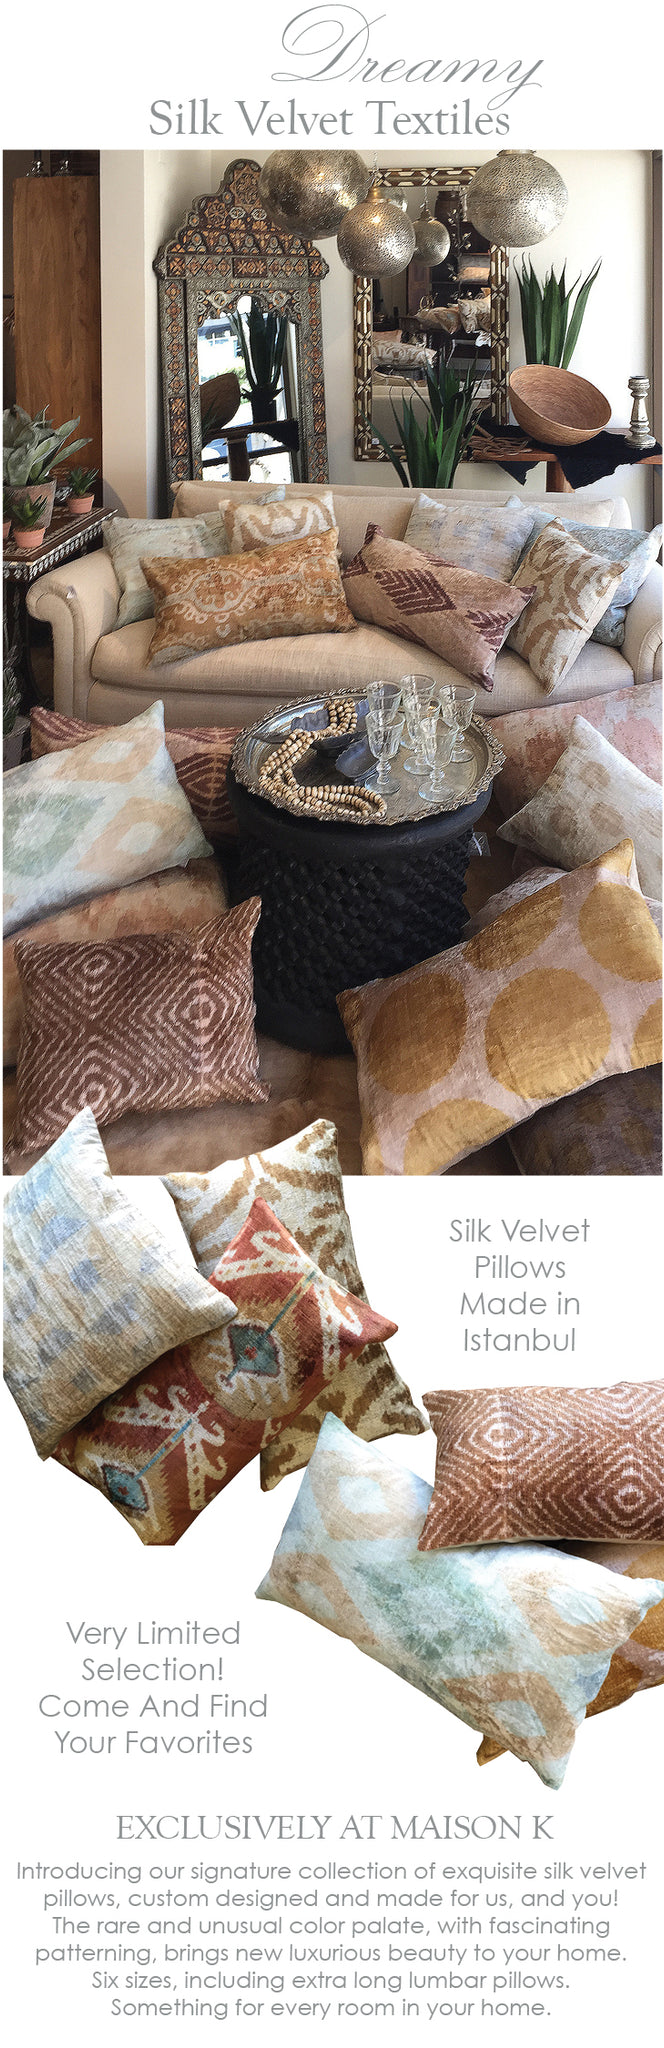 Brighten Your Home With Silk Velvet Textiles